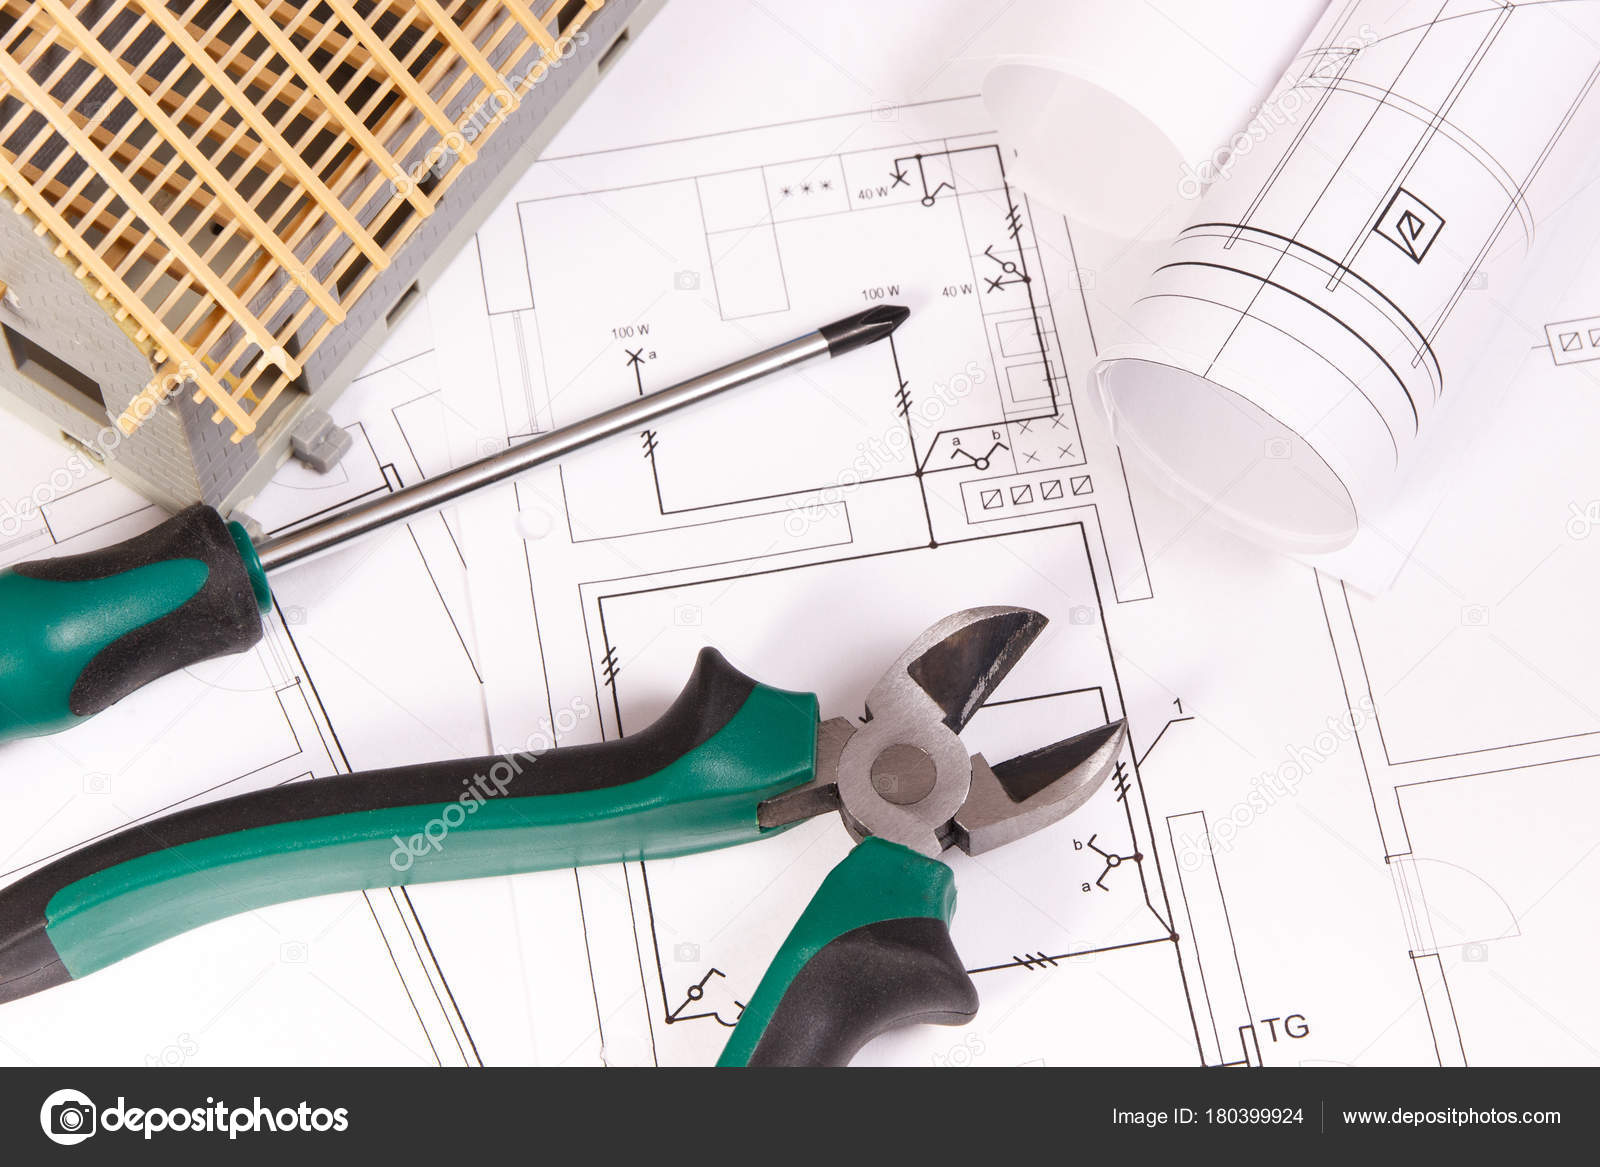 Electrical drawings, work tools and house under construction ...